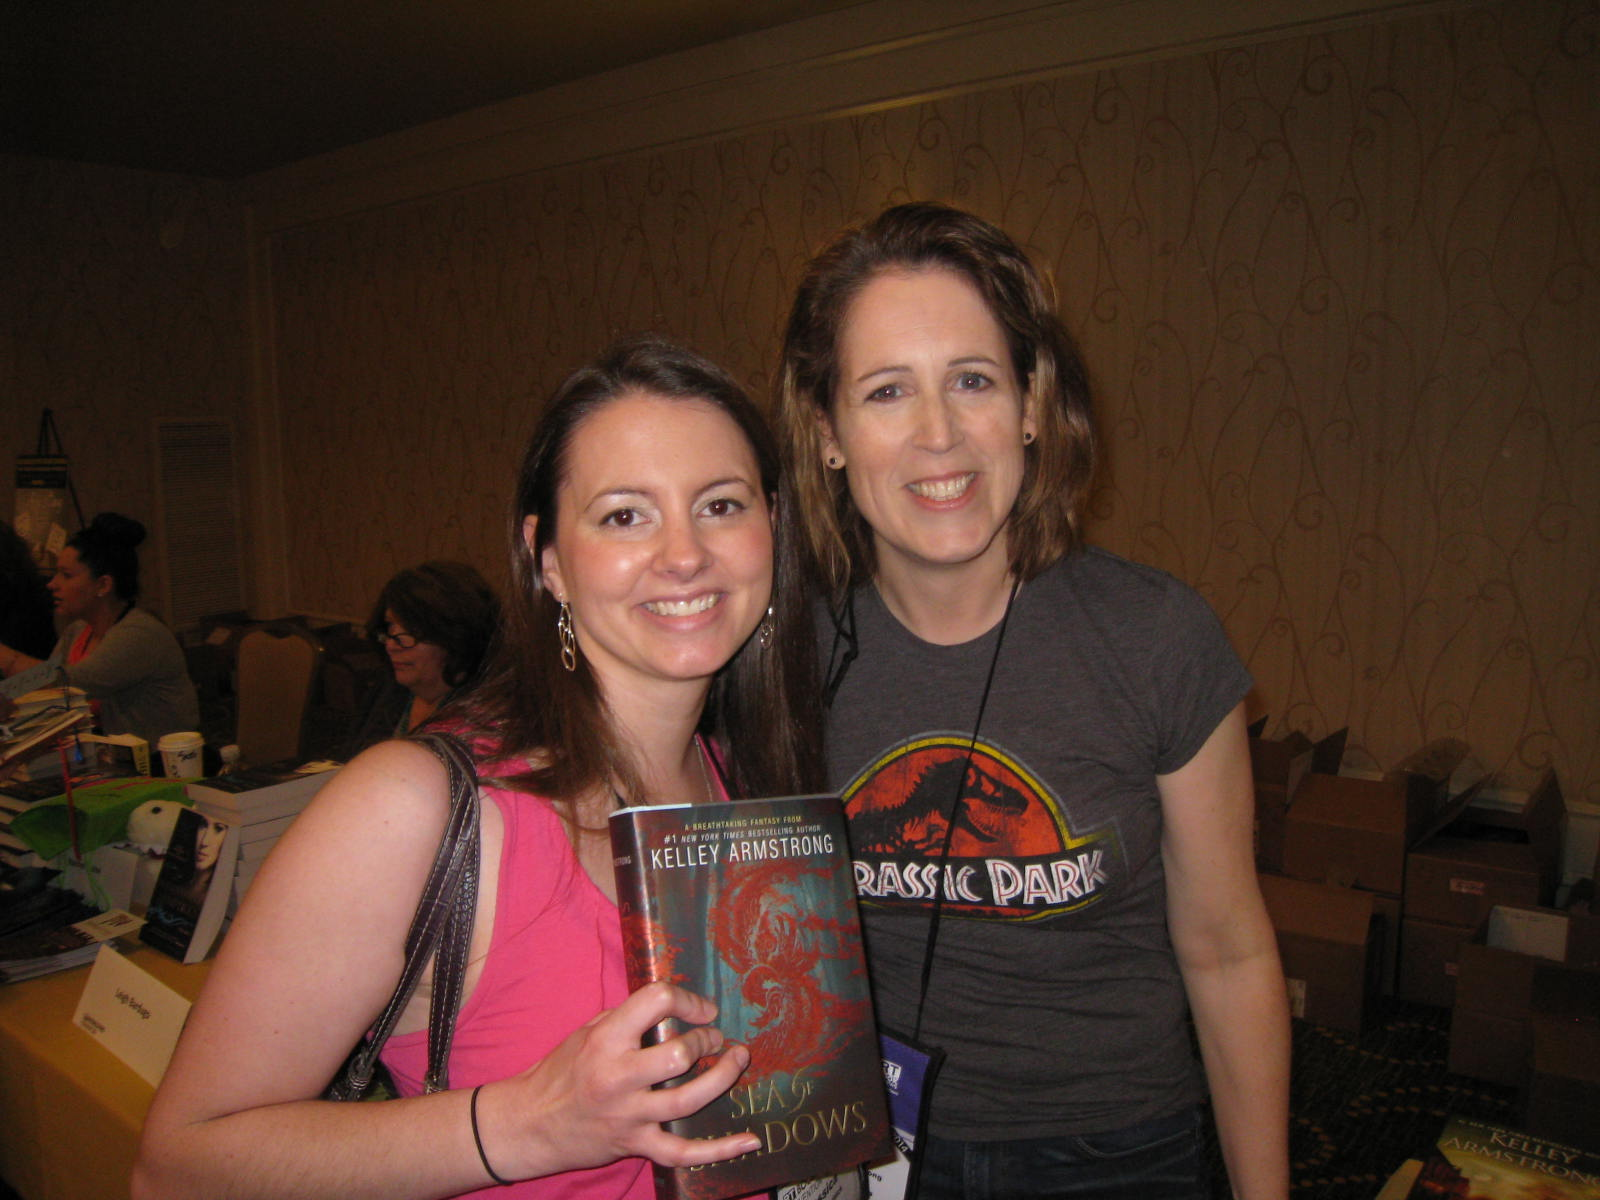 Jessica & Kelley Armstrong